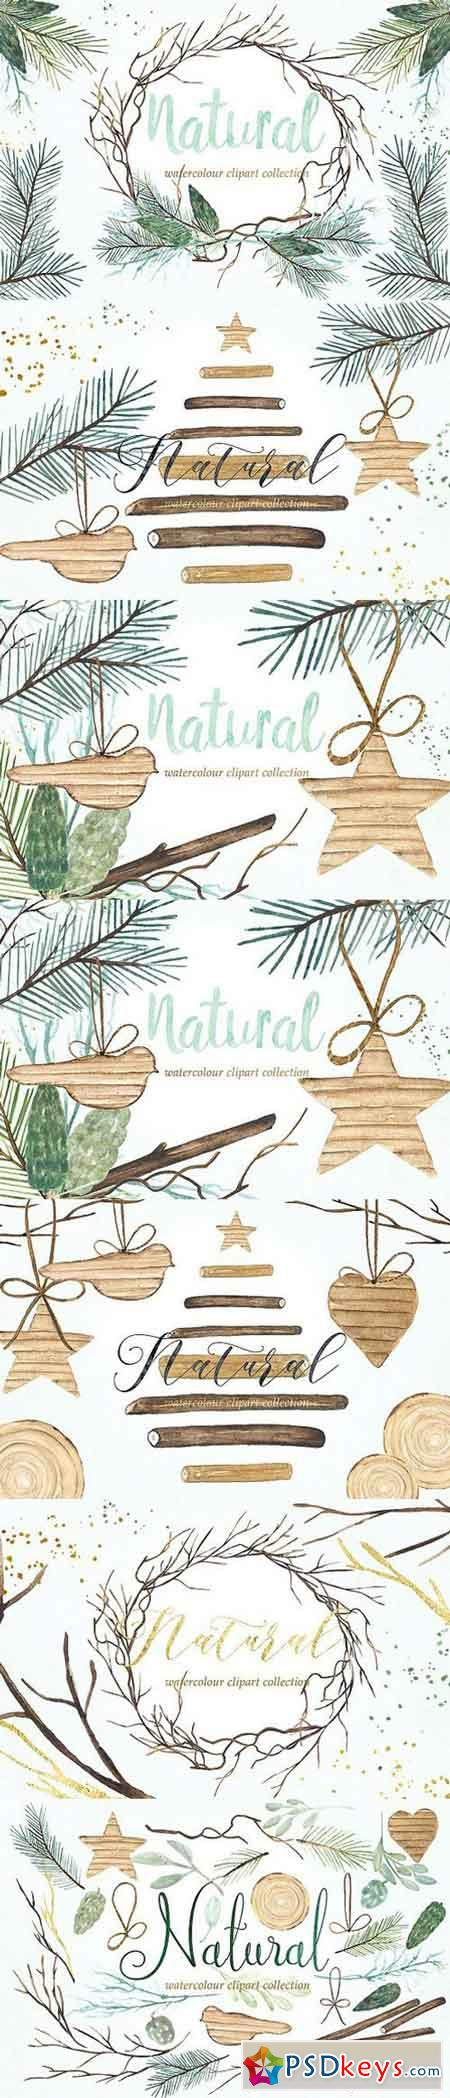 Natural winter. Watercolor clipart 959018